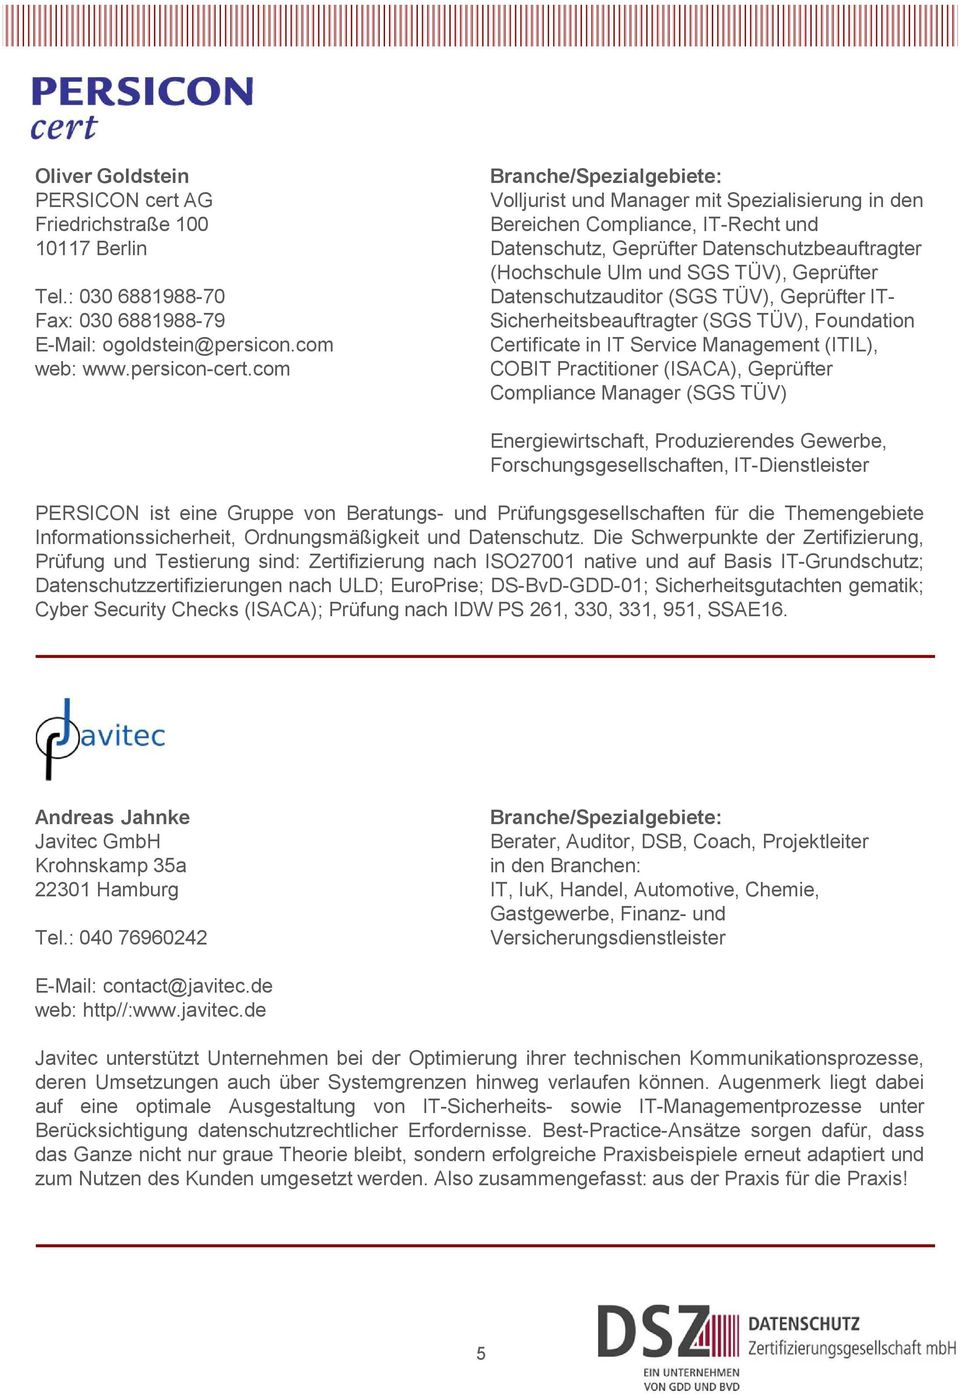 TÜV), Geprüfter IT- Sicherheitsbeauftragter (SGS TÜV), Foundation Certificate in IT Service Management (ITIL), COBIT Practitioner (ISACA), Geprüfter Compliance Manager (SGS TÜV) Energiewirtschaft,